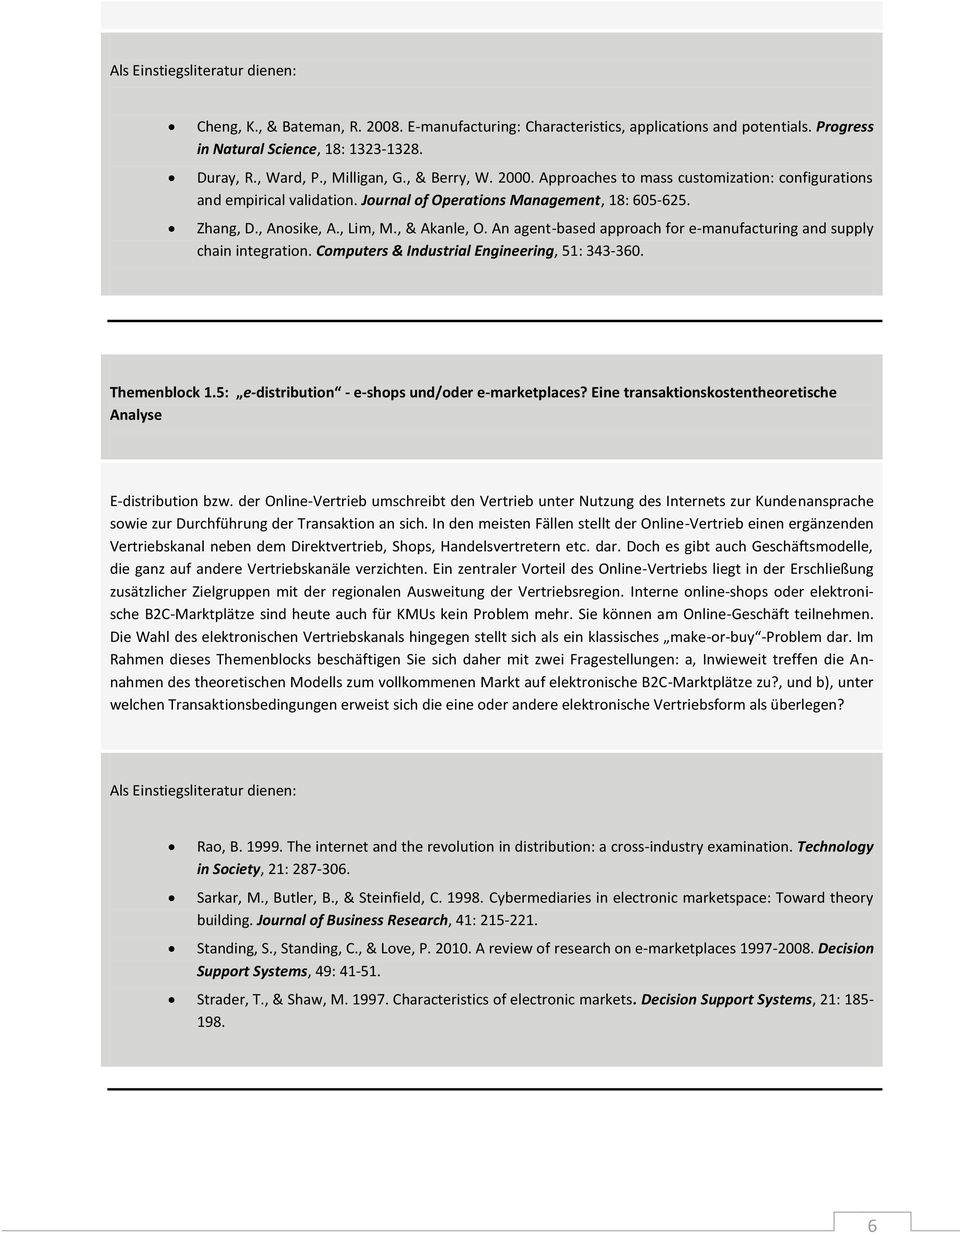 An agent-based approach for e-manufacturing and supply chain integration. Computers & Industrial Engineering, 51: 343-360. Themenblock 1.5: e-distribution - e-shops und/oder e-marketplaces?